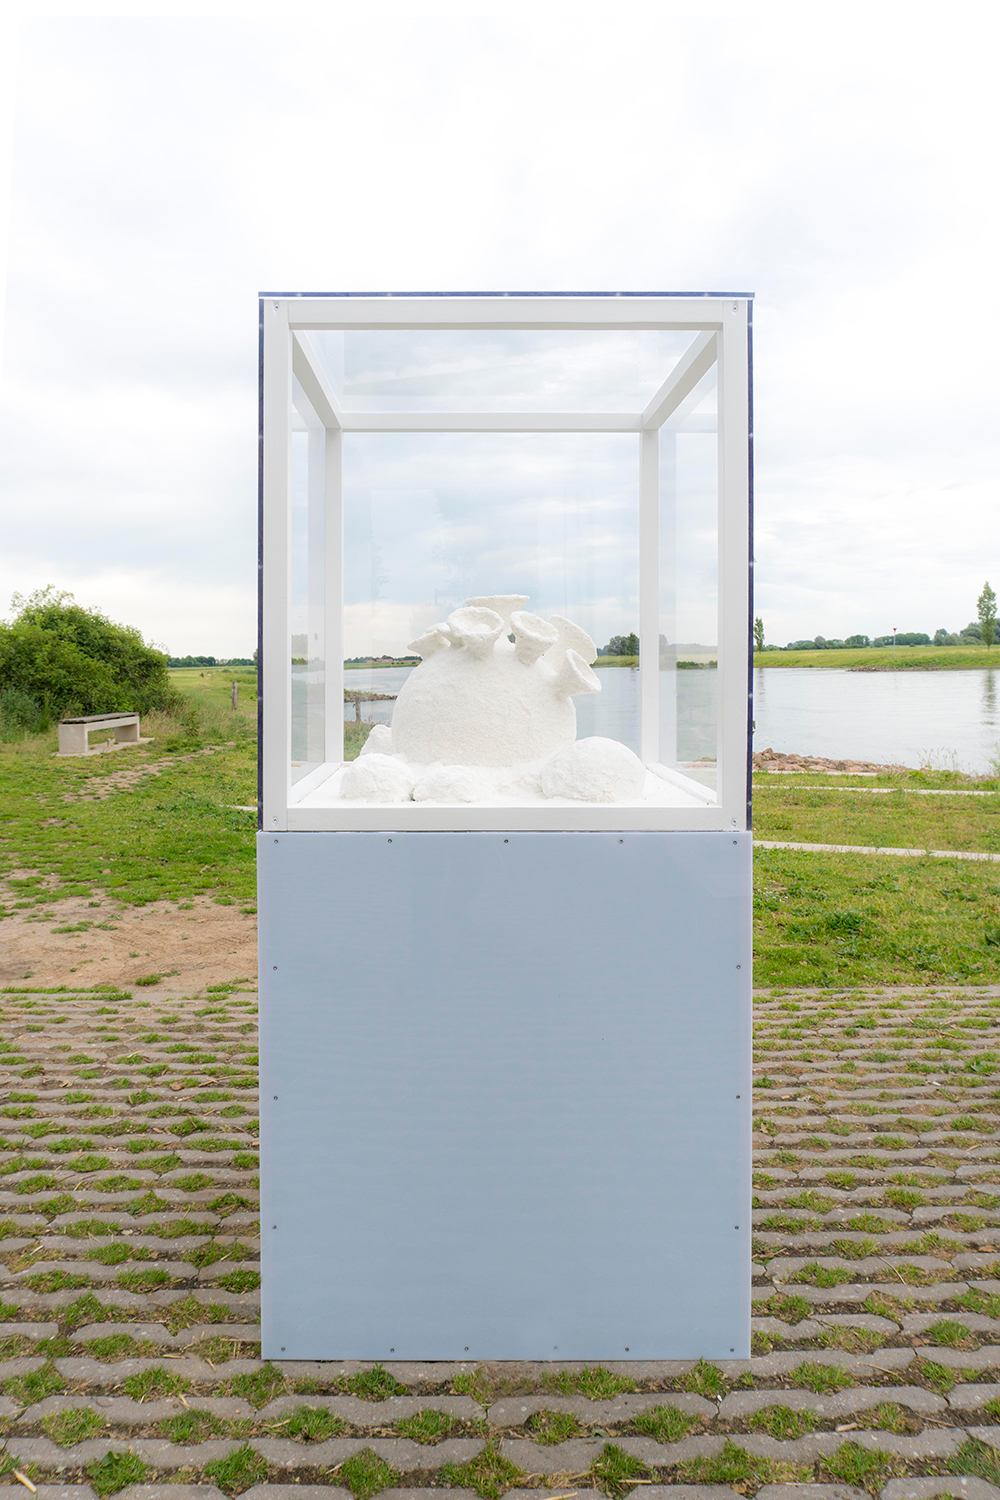 You are browsing images from the article: Salt Flowers in the IJssel Biennial, NL